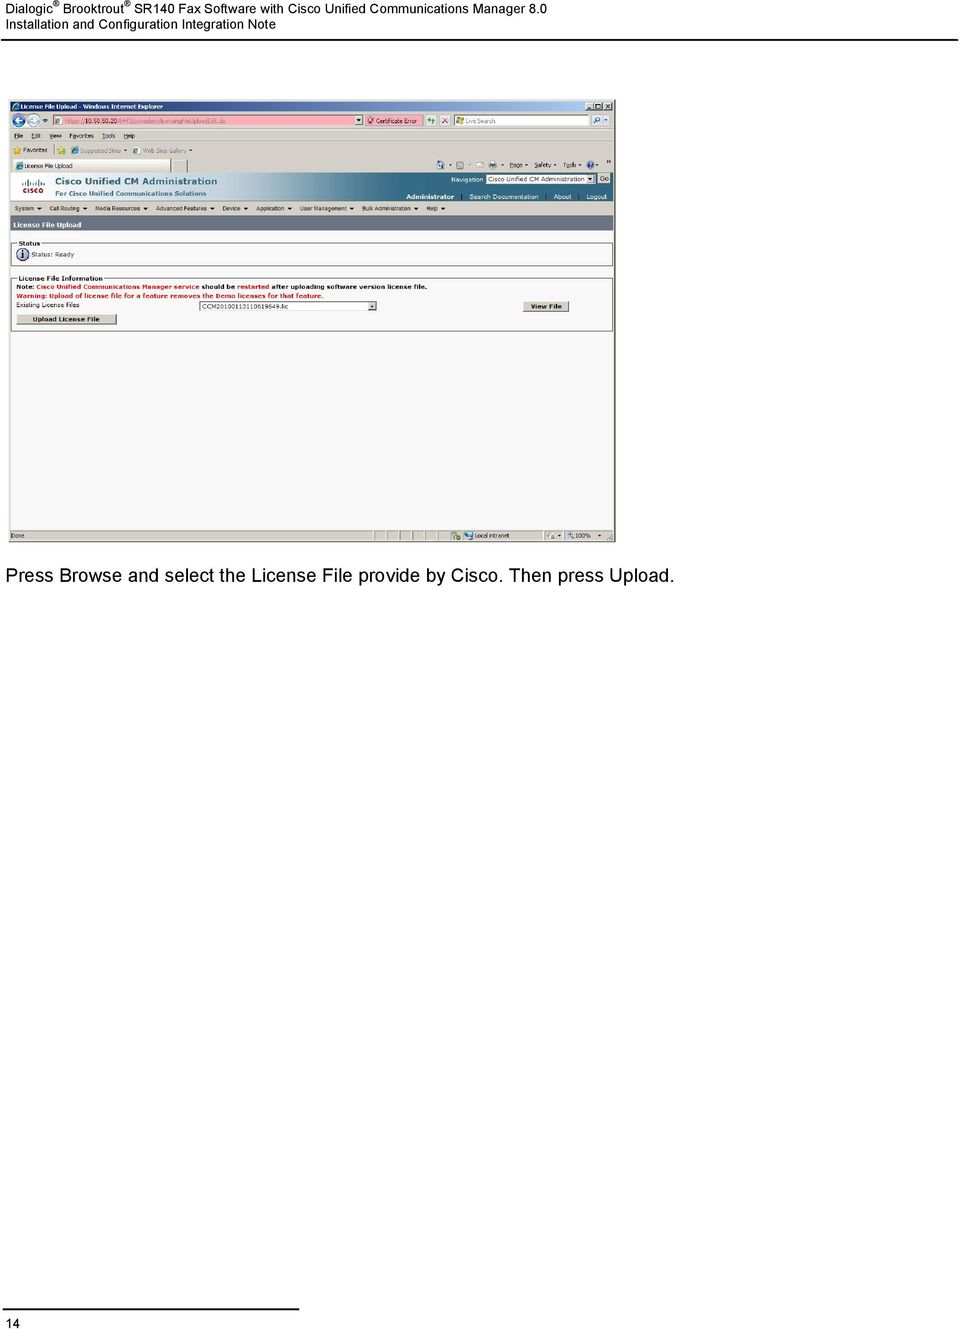 IMPORTANT NOTE  Dialogic Brooktrout SR140 Fax Software with Cisco